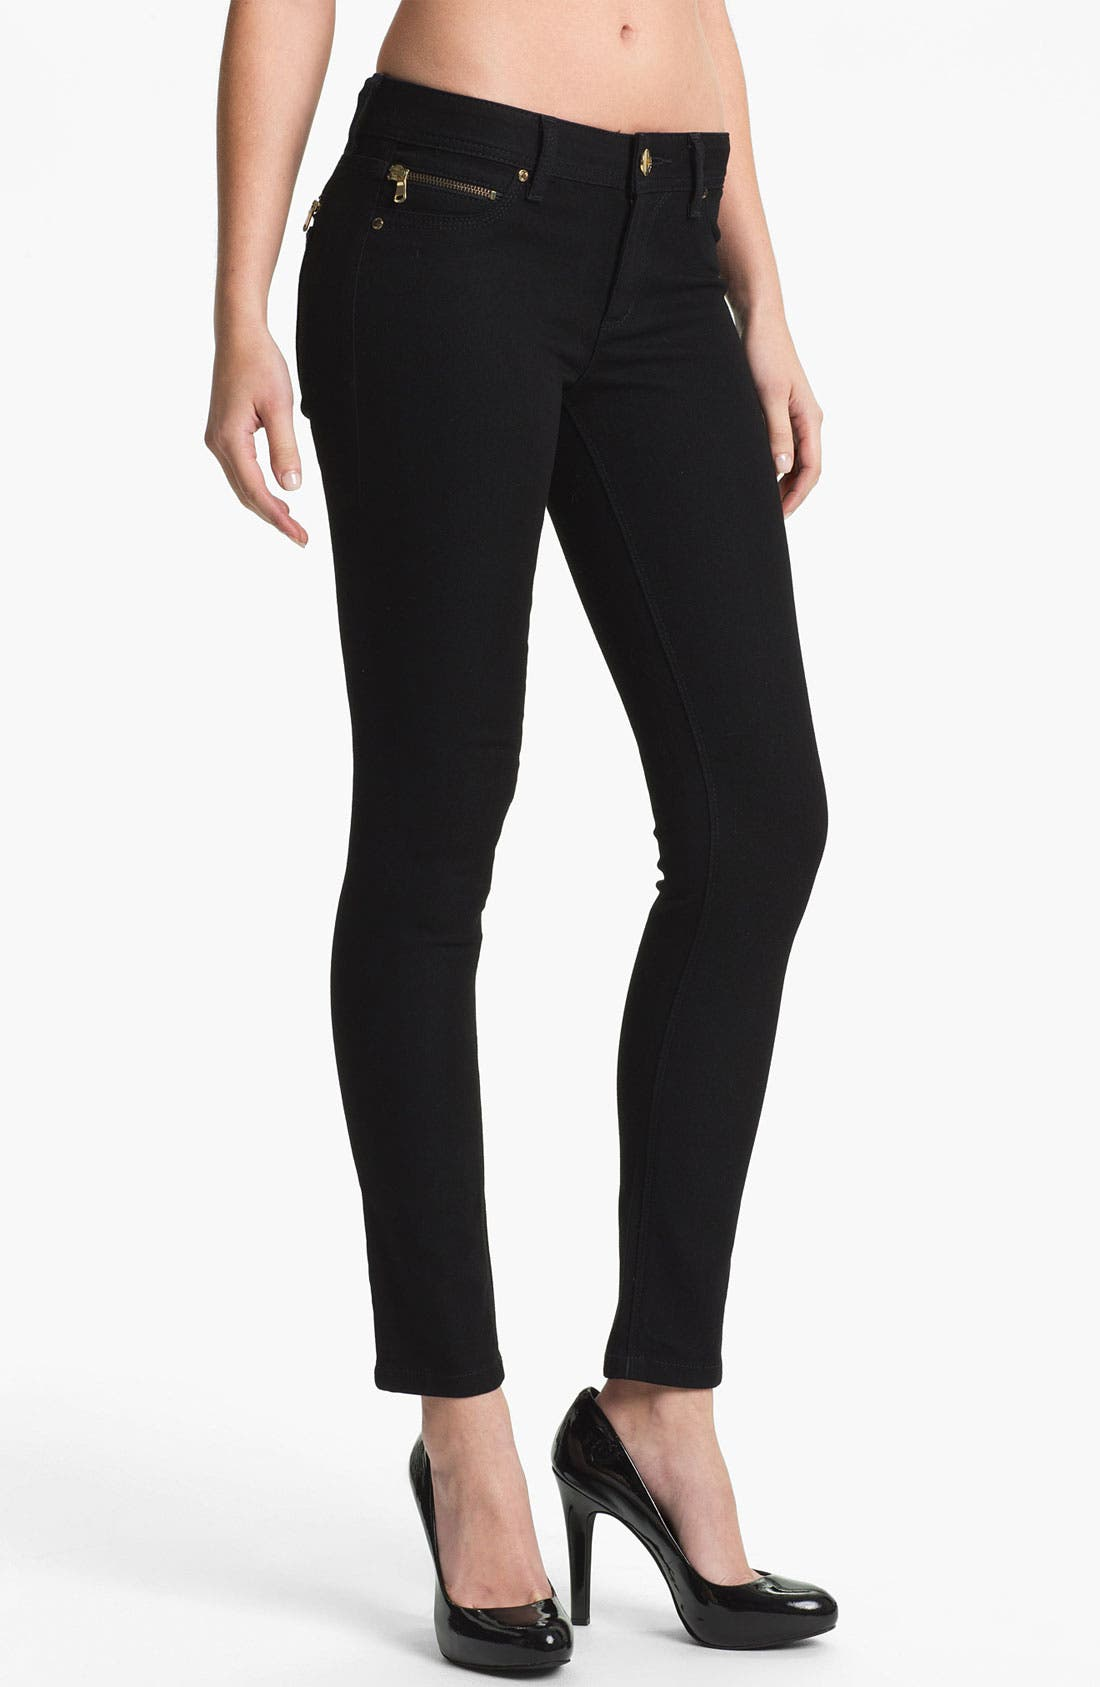 Alternate Image 1 Selected - DL1961 'Amanda' X-Fit Stretch Denim Zip Pocket Skinny Jeans (Lax)